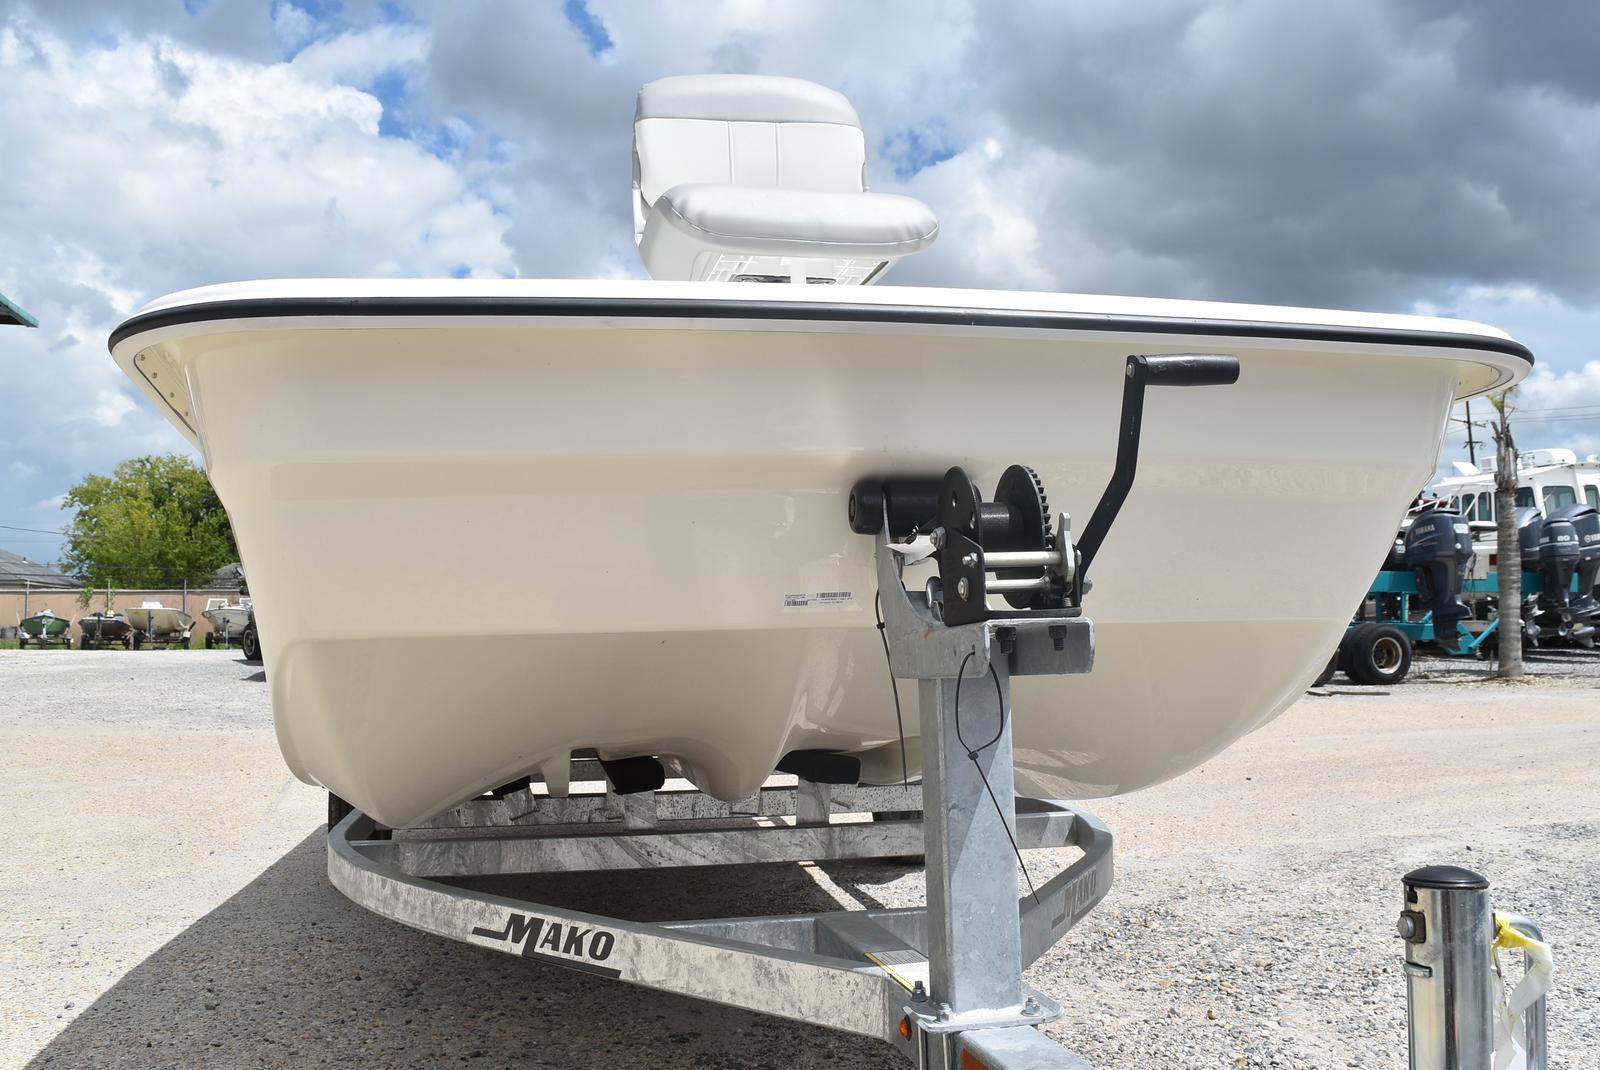 2020 Mako boat for sale, model of the boat is Pro Skiff 17, 75 ELPT & Image # 320 of 702